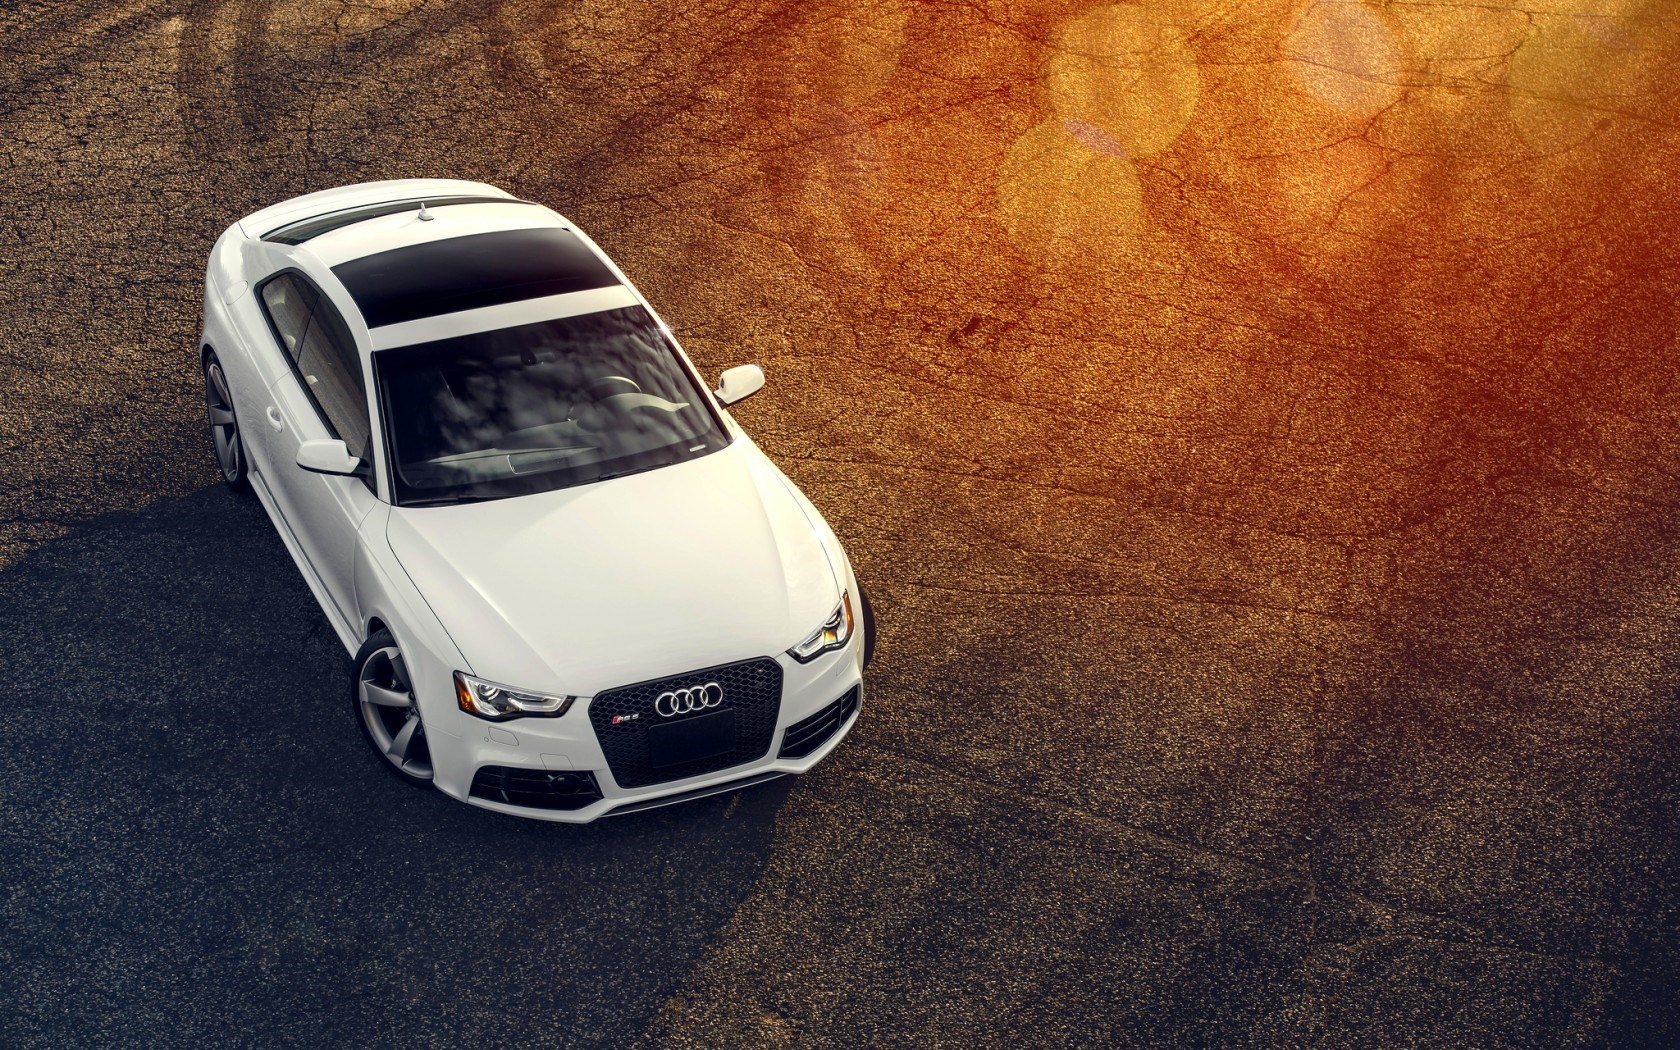 Audi RS5 White Car